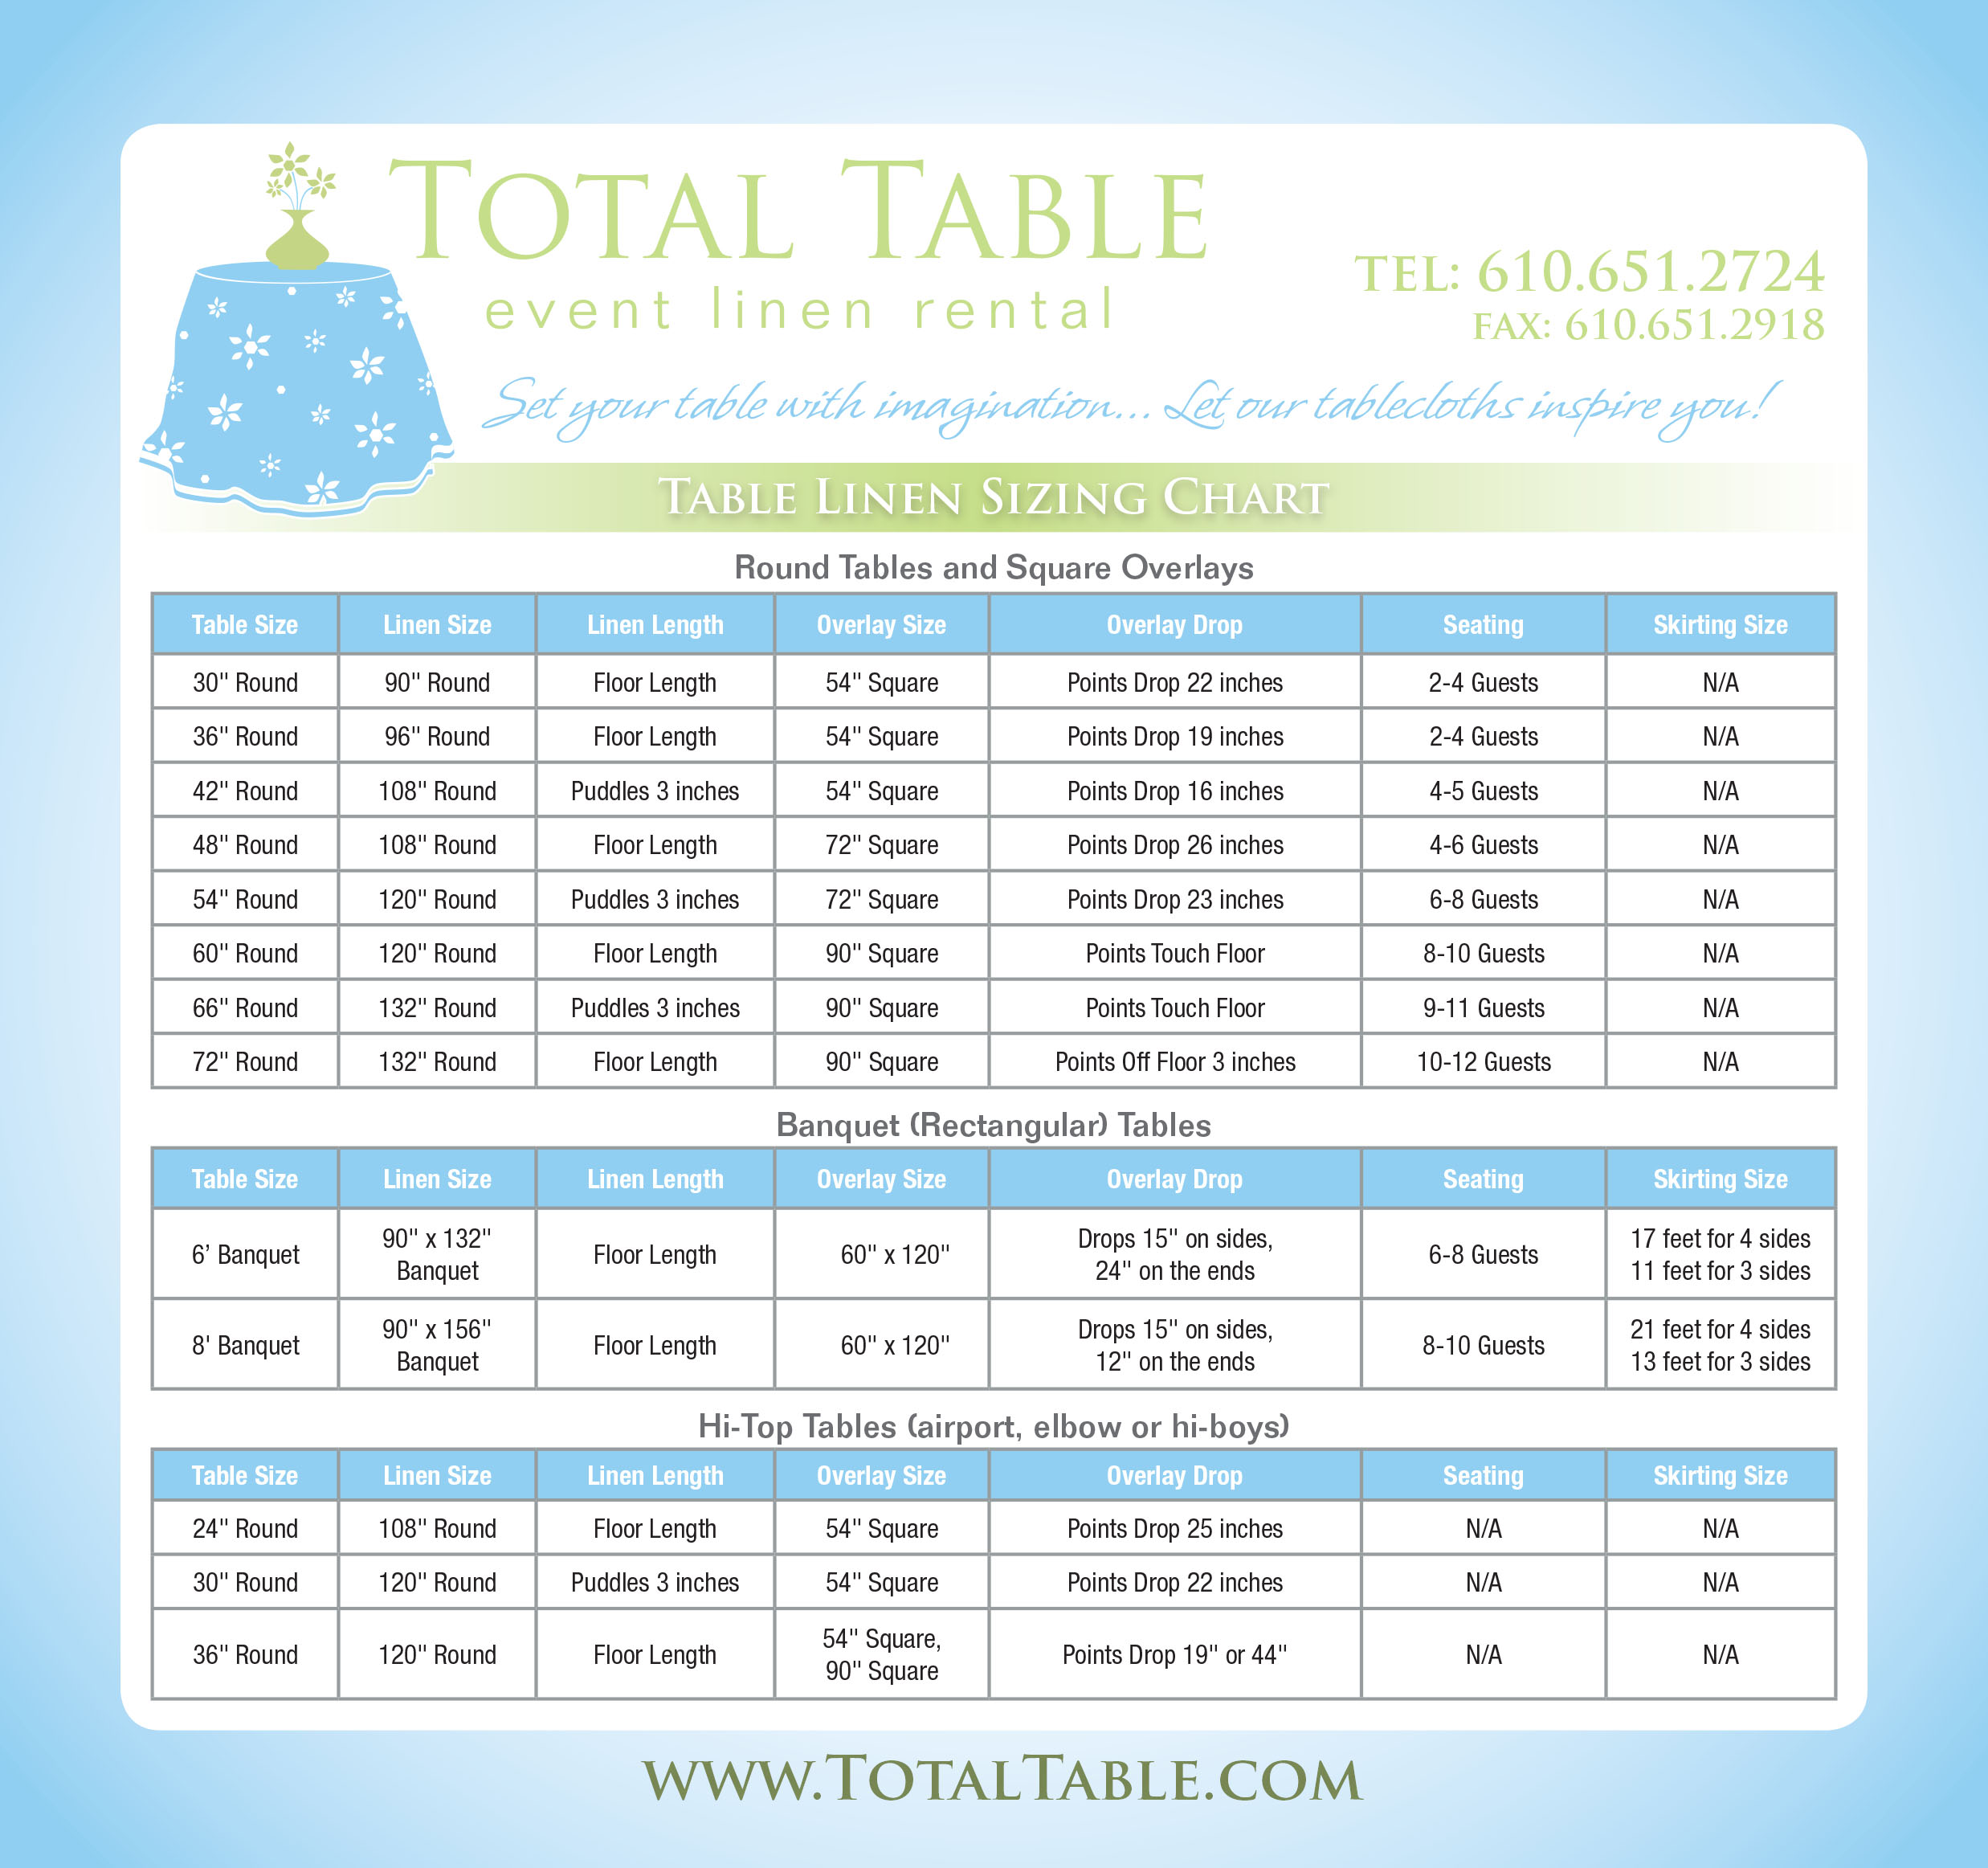 Tablecloth sizes image freeuse download Pinterest 상의 Tablecloth Sizes에 관한 1,000개 이상의 아이디어 ... image freeuse download